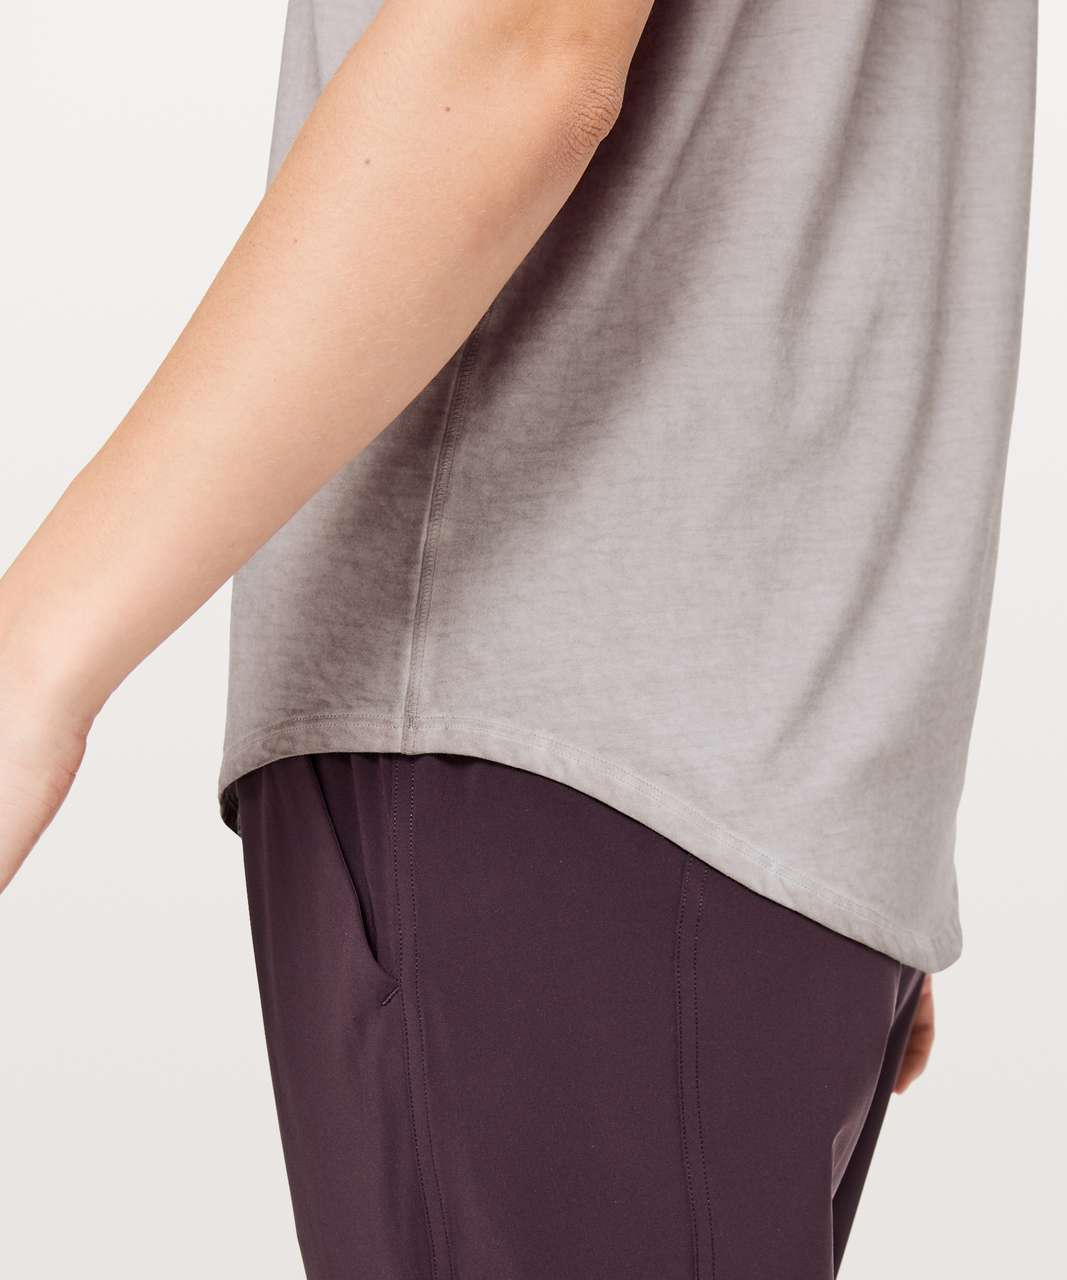 Lululemon Love Crew *Fade - Washed French Clay